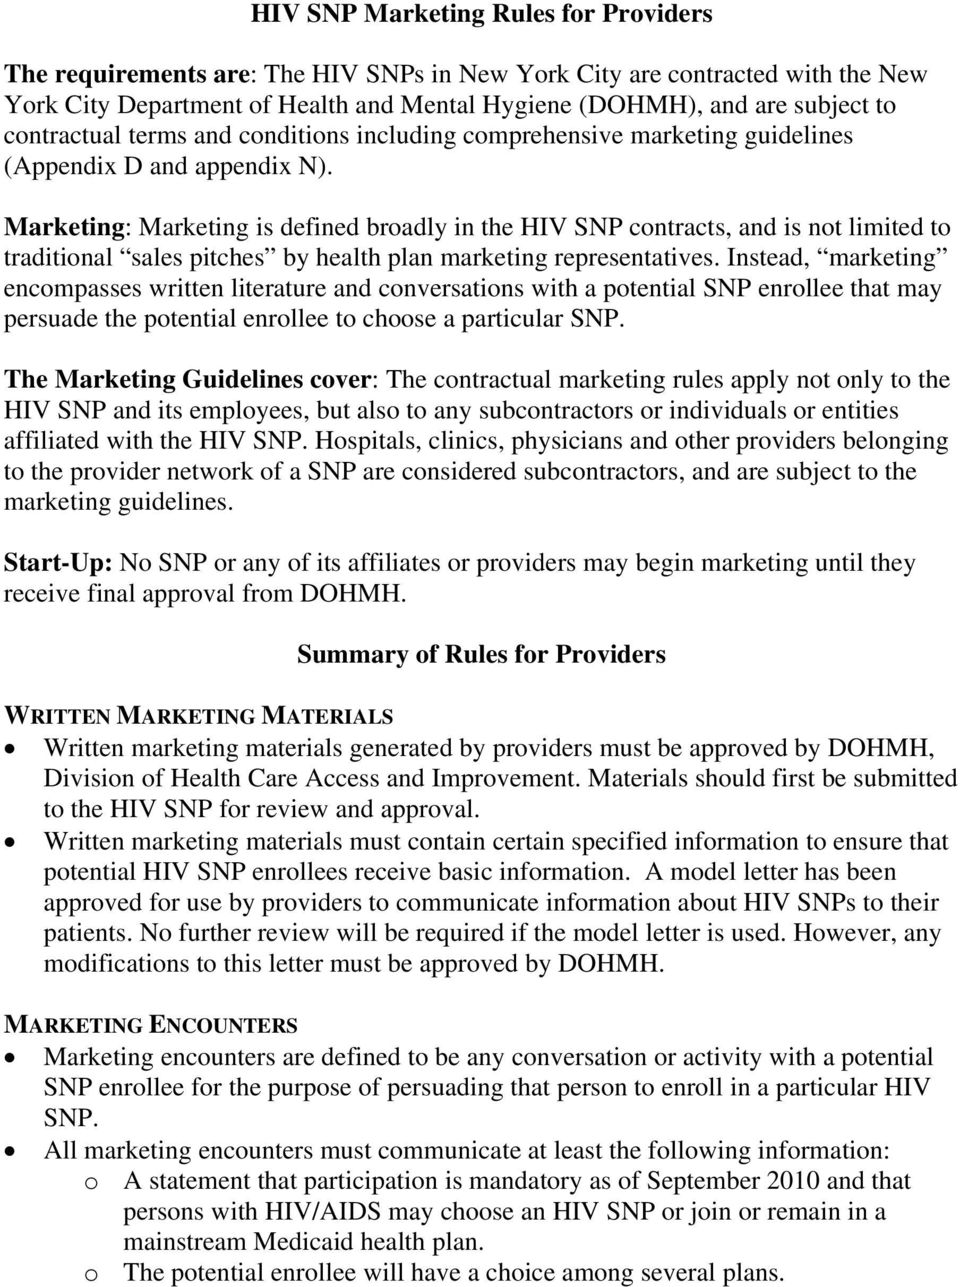 Marketing: Marketing is defined broadly in the HIV SNP contracts, and is not limited to traditional sales pitches by health plan marketing representatives.